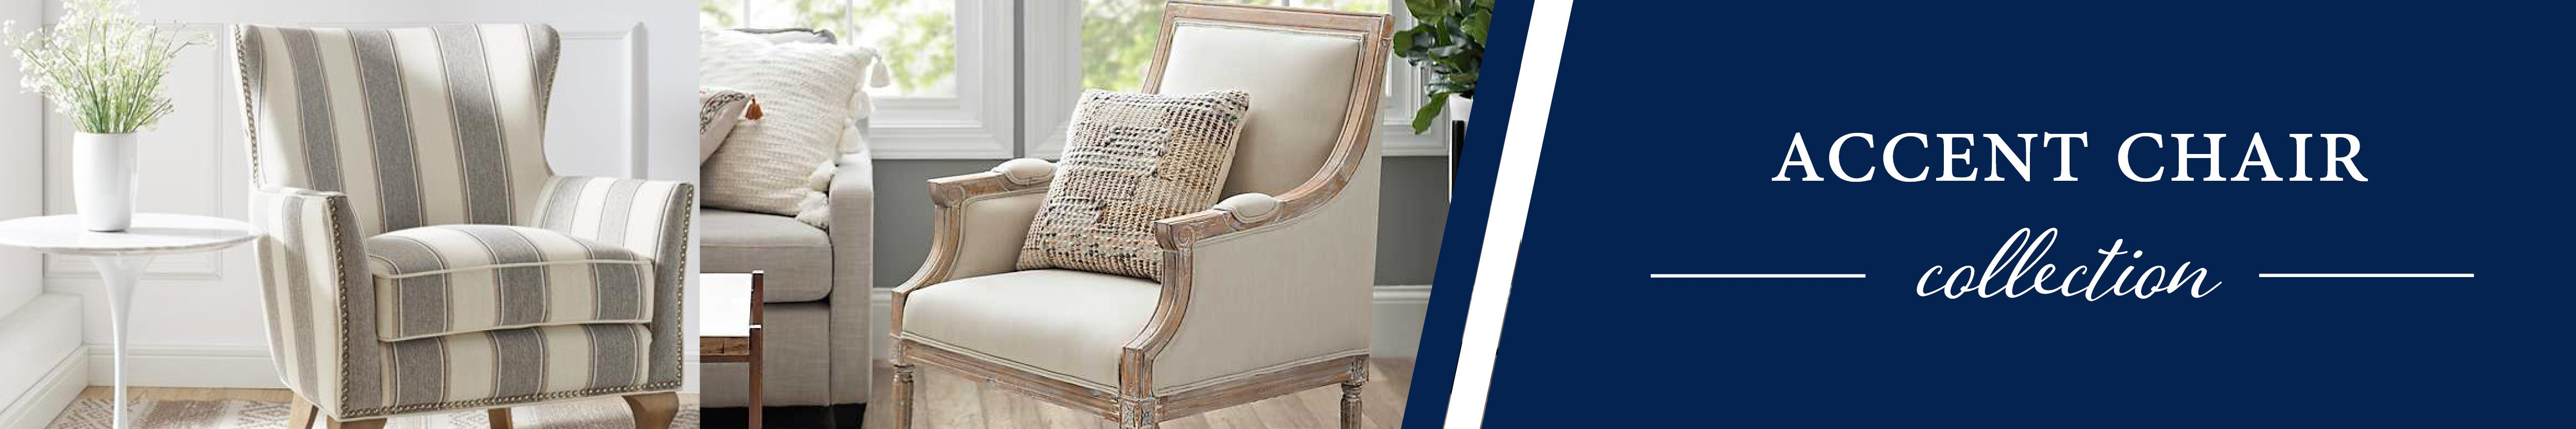 HomePlus Furniture | Accent Chairs